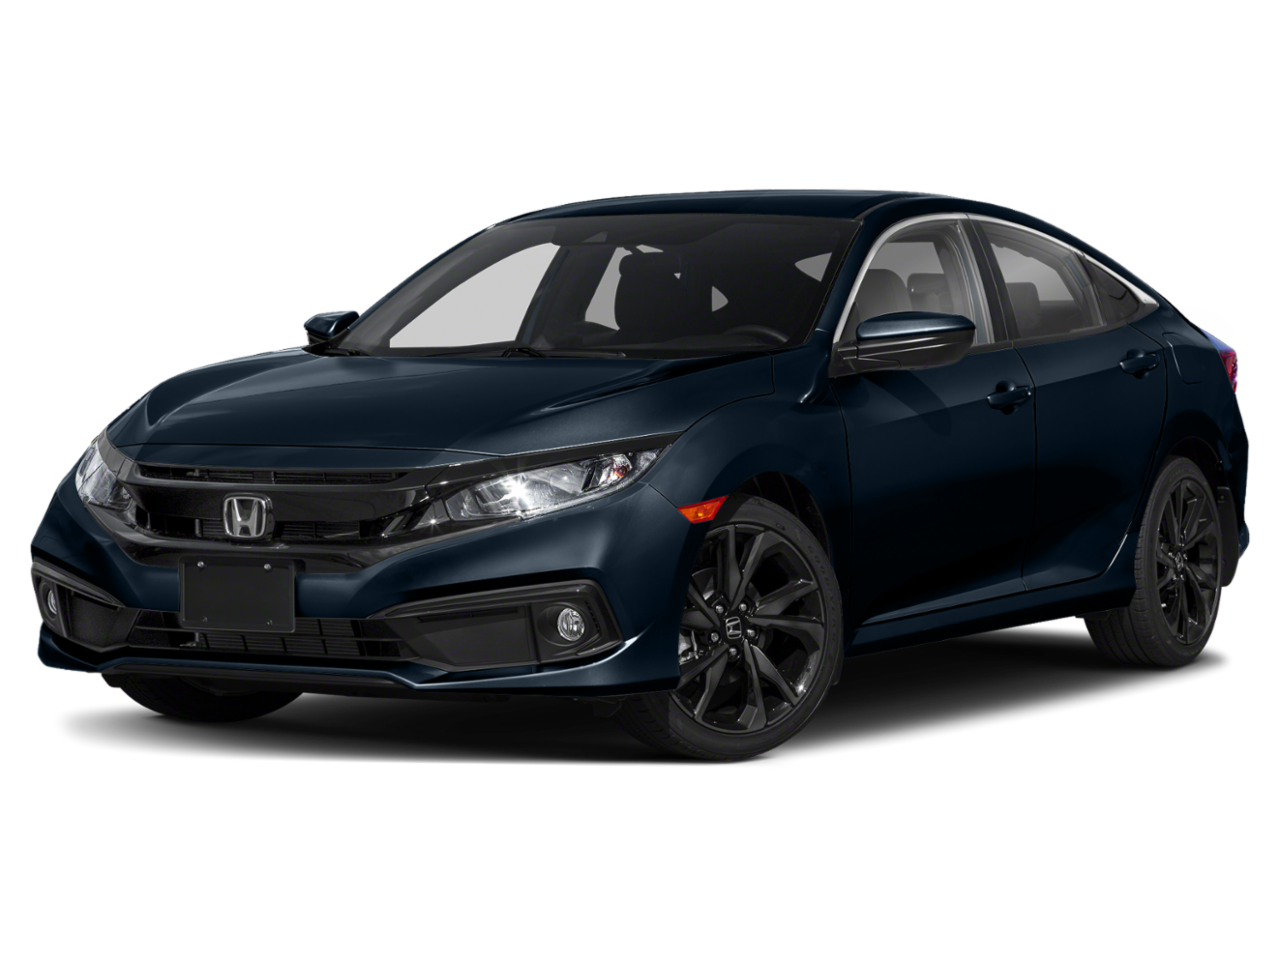 Check Out The 2020 Civic Sedan Sport Manual Sedan On Sce Manual Guide